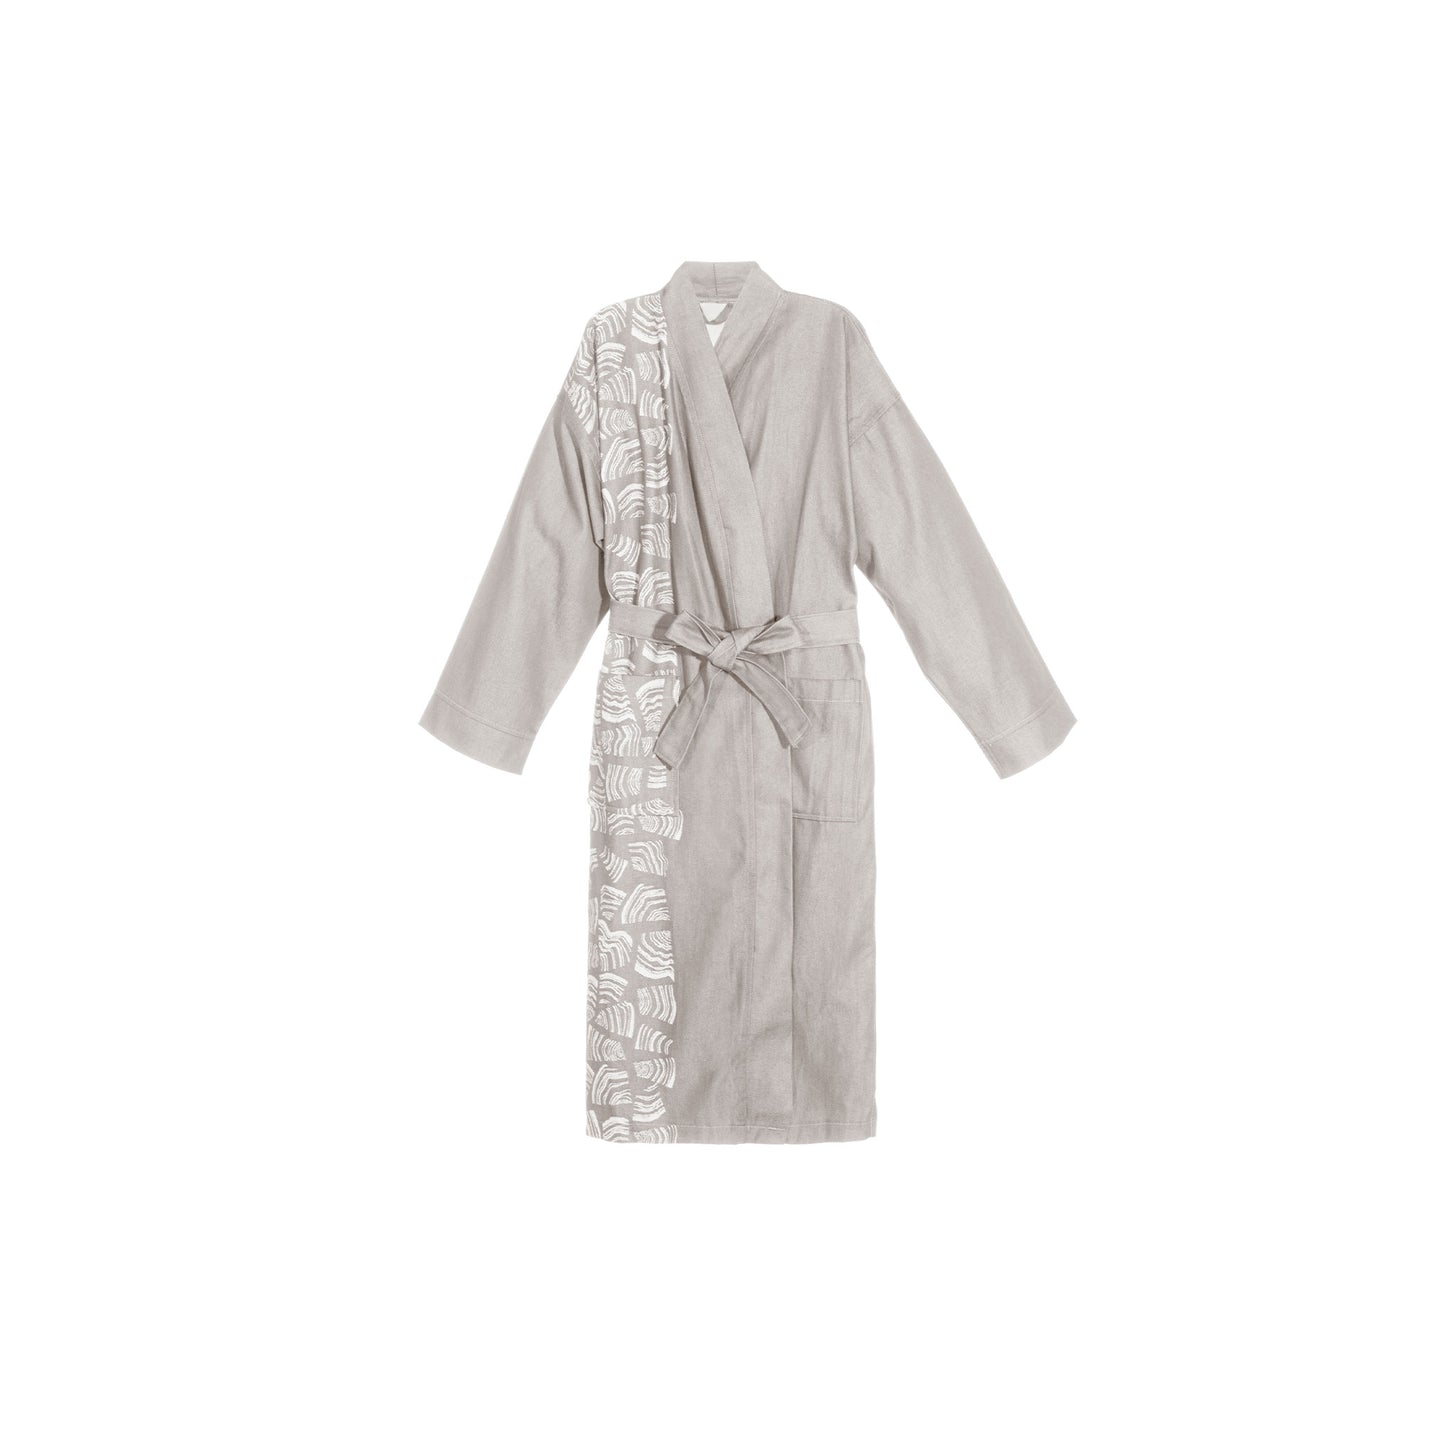 Rento Pino Sauna Bathrobe Grey S/M Sauna Robes & Dressing Gowns Finnmark Sauna